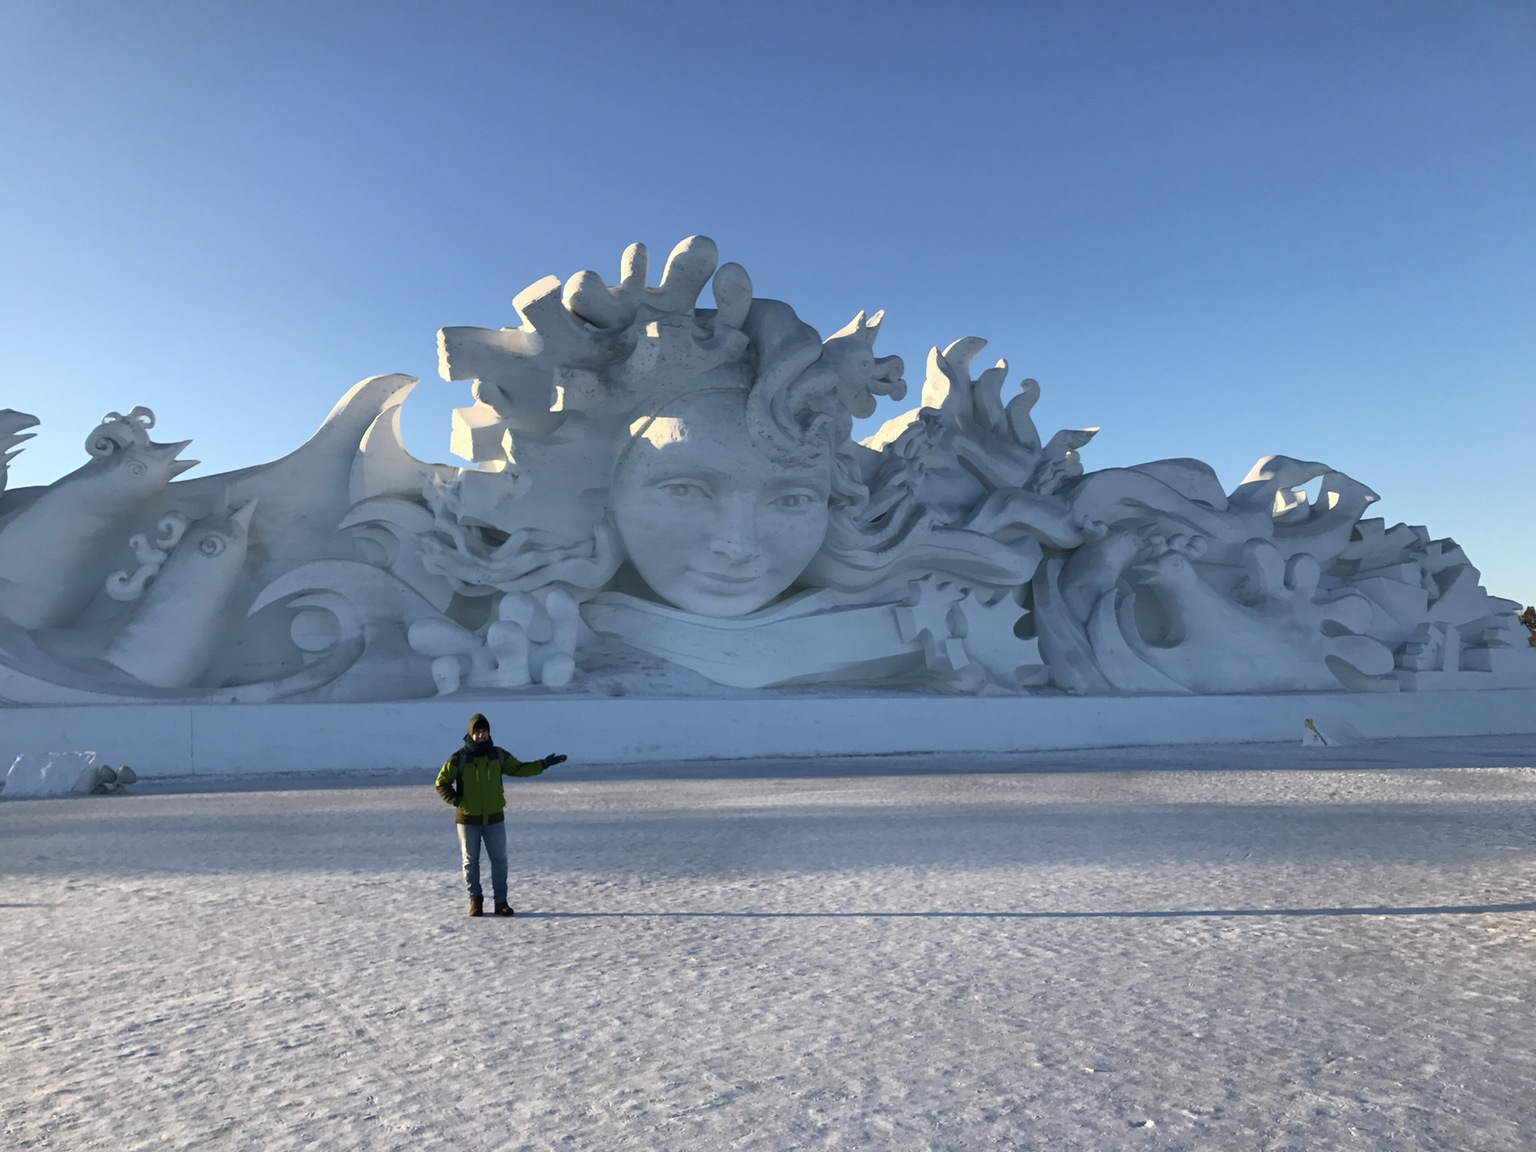 Exploring giant snow sculptures in China.